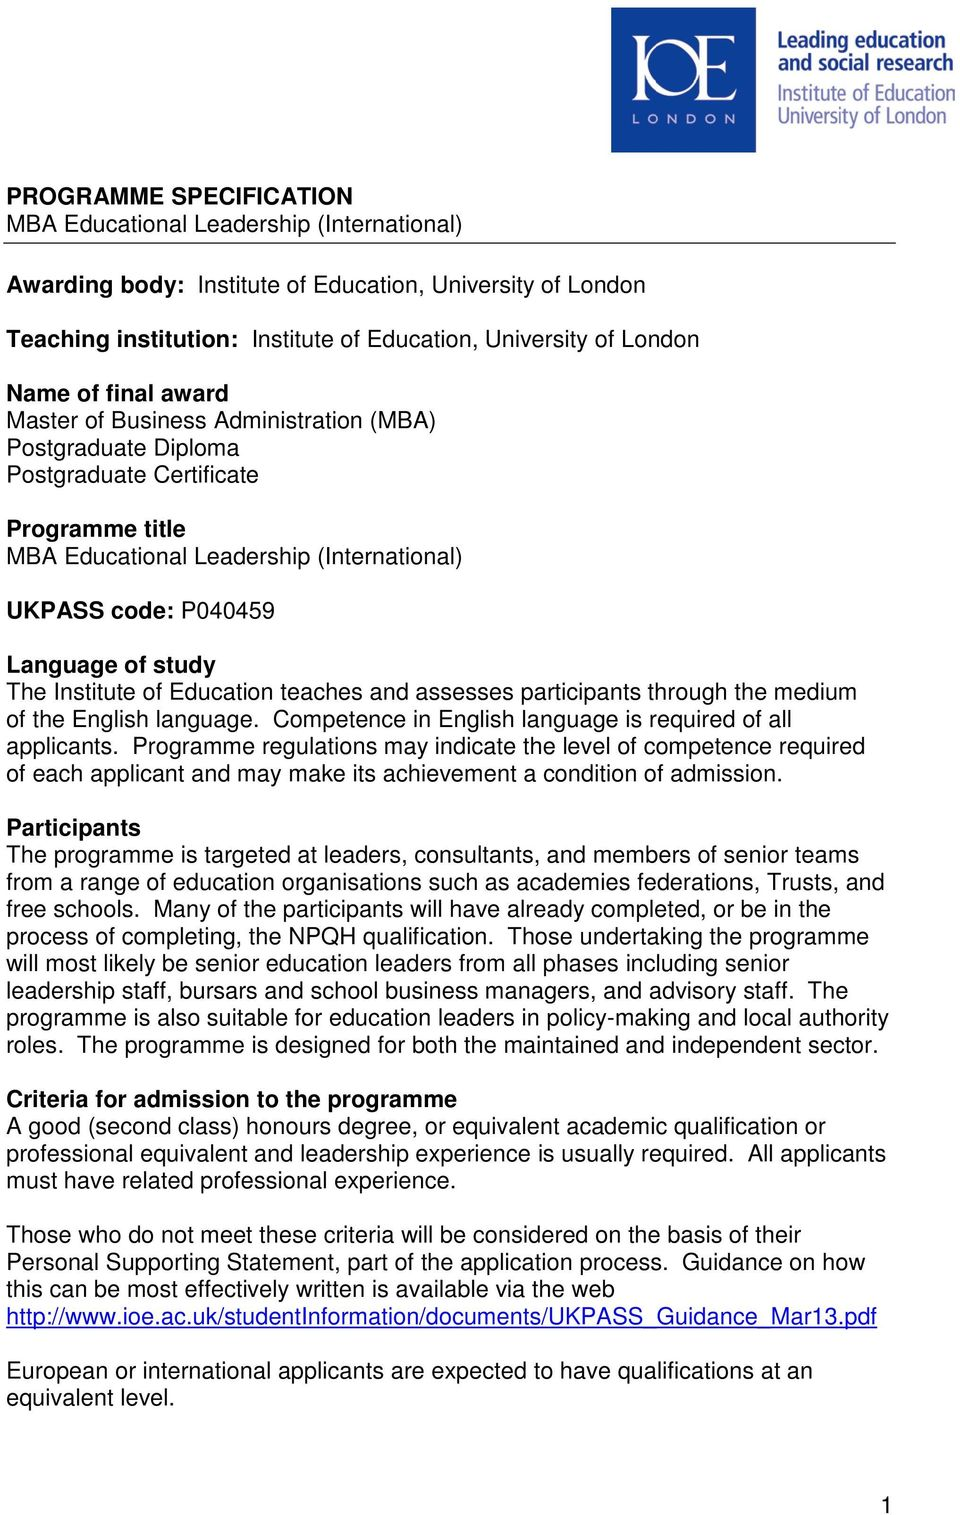 The Institute of Education teaches and assesses participants through the medium of the English language. Competence in English language is required of all applicants.